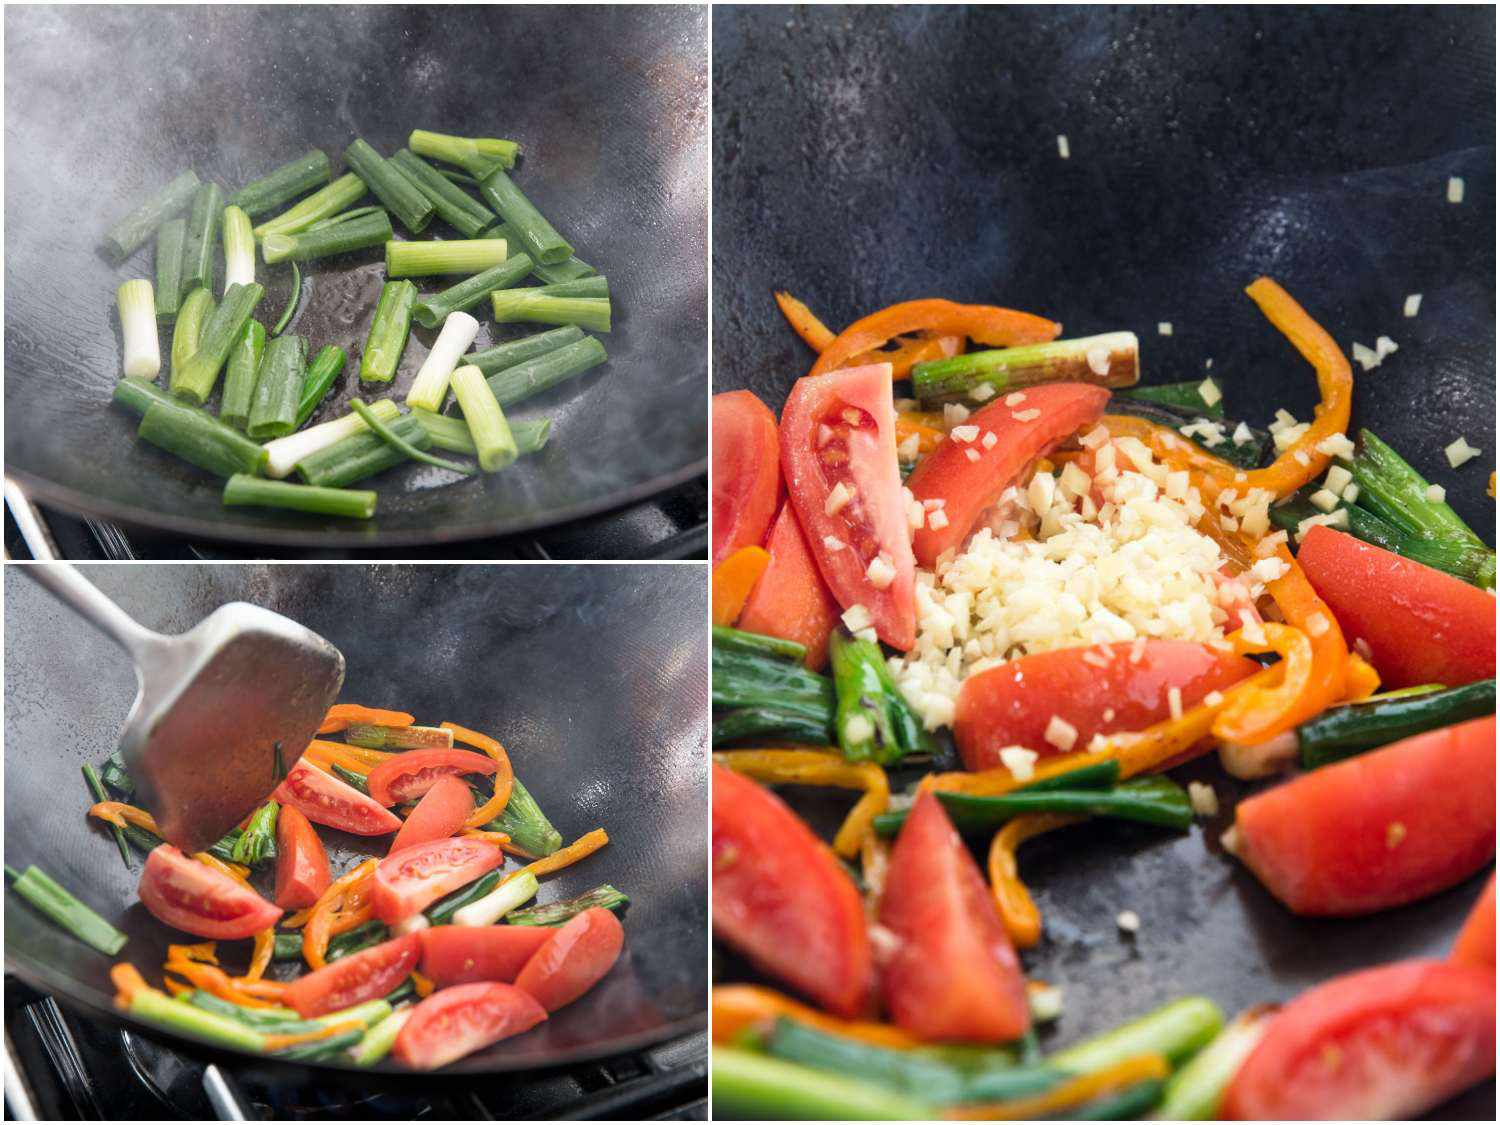 20190321-lomo-saltado-vicky-wasik-cooking-scallions-tomatoes-peppers-garlic-ginger